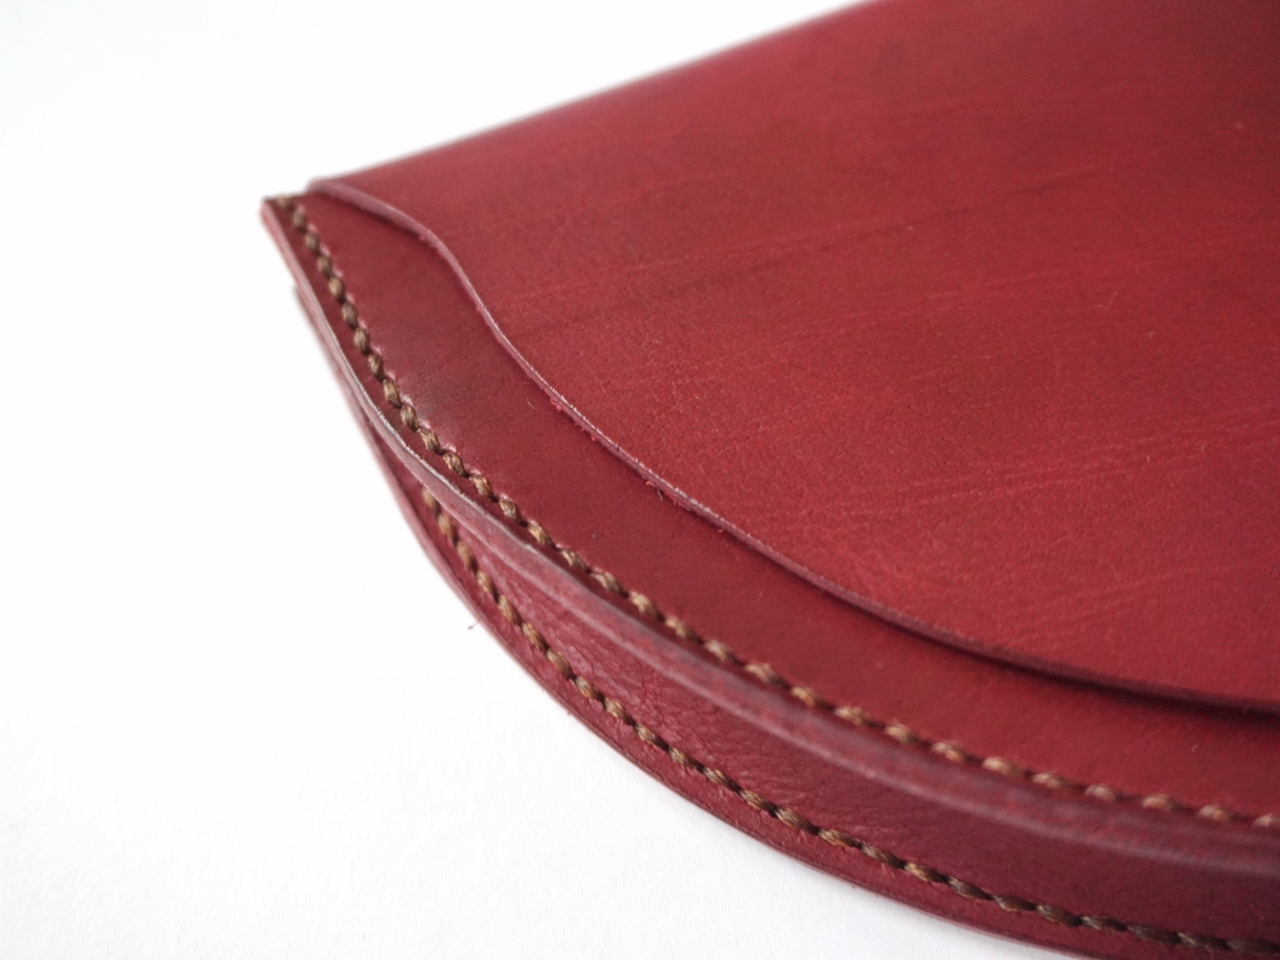 Piper Belt Bag - Burgundy (1280x960) (3).jpg